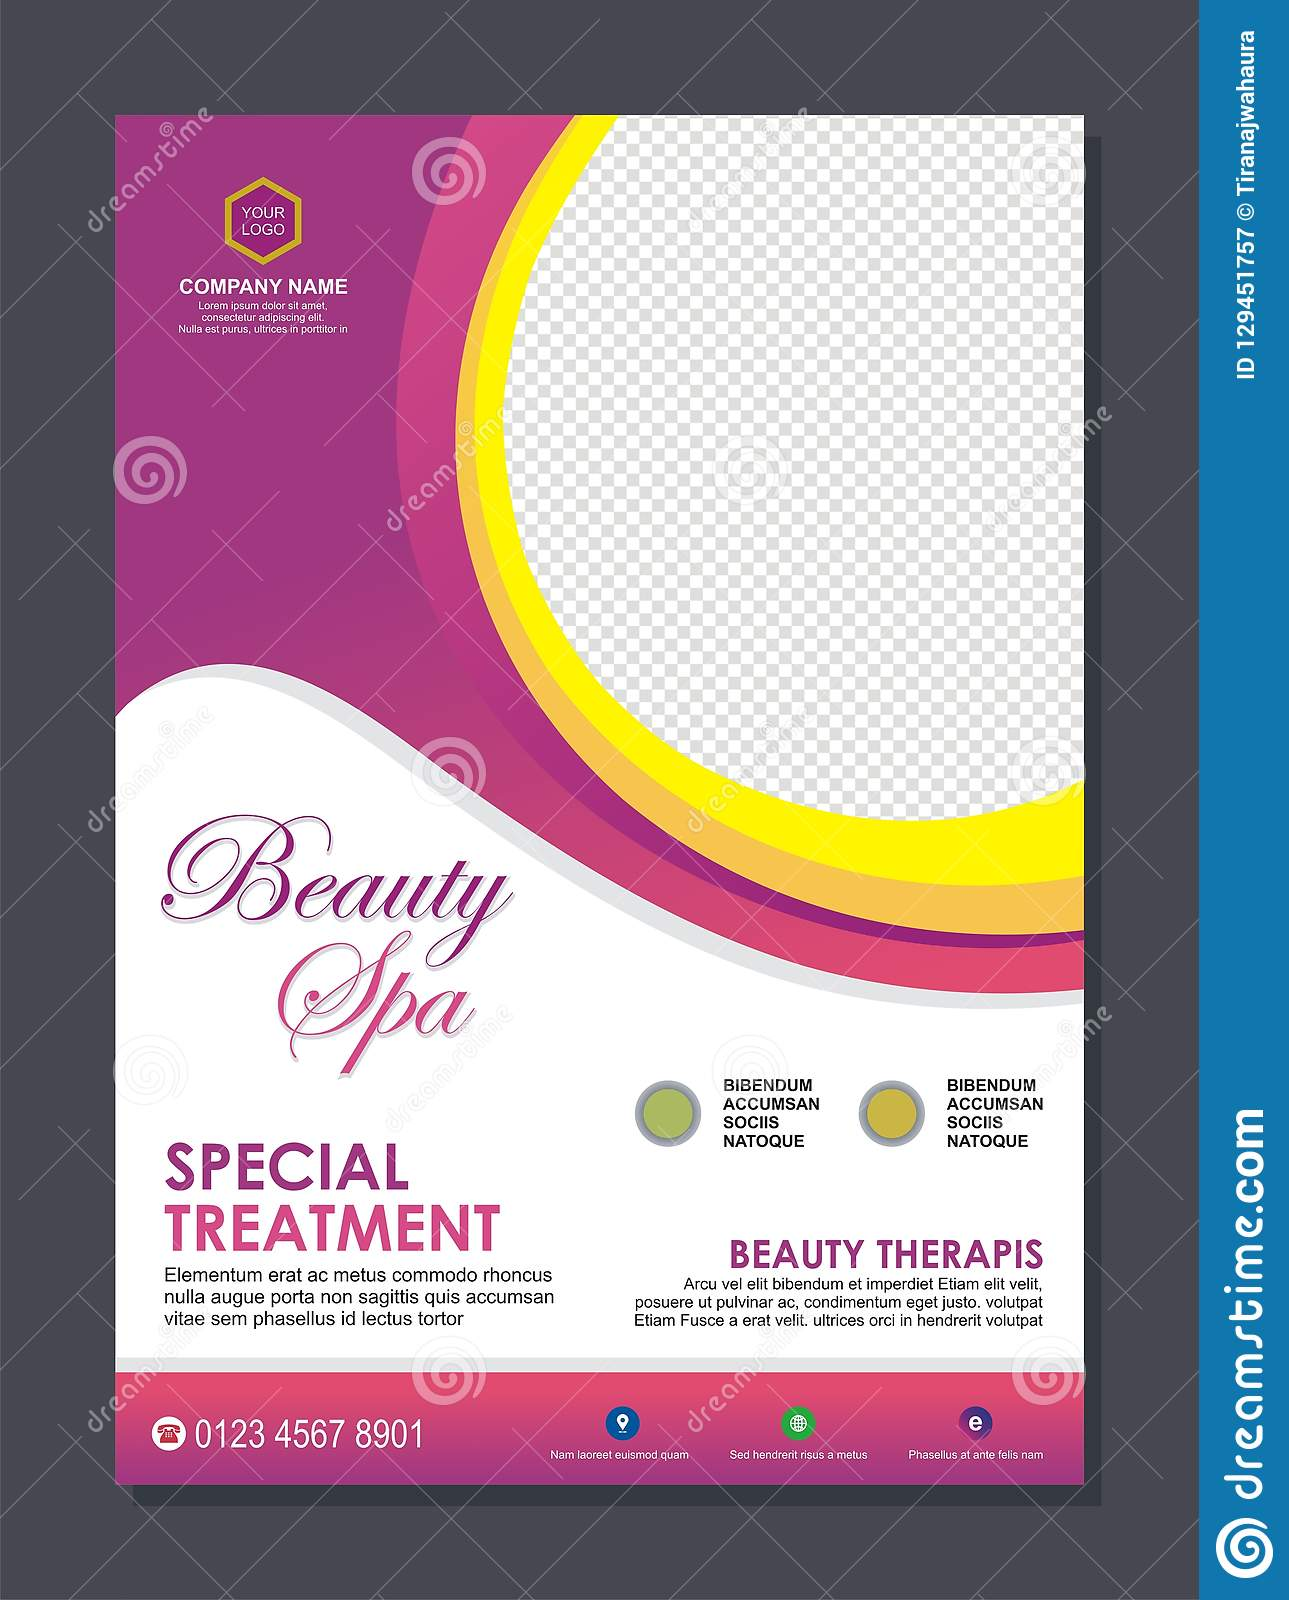 Beauty Spa Flyer Template With Stylish Wave Design Stock Vector Illustration Of Book Background 129451757